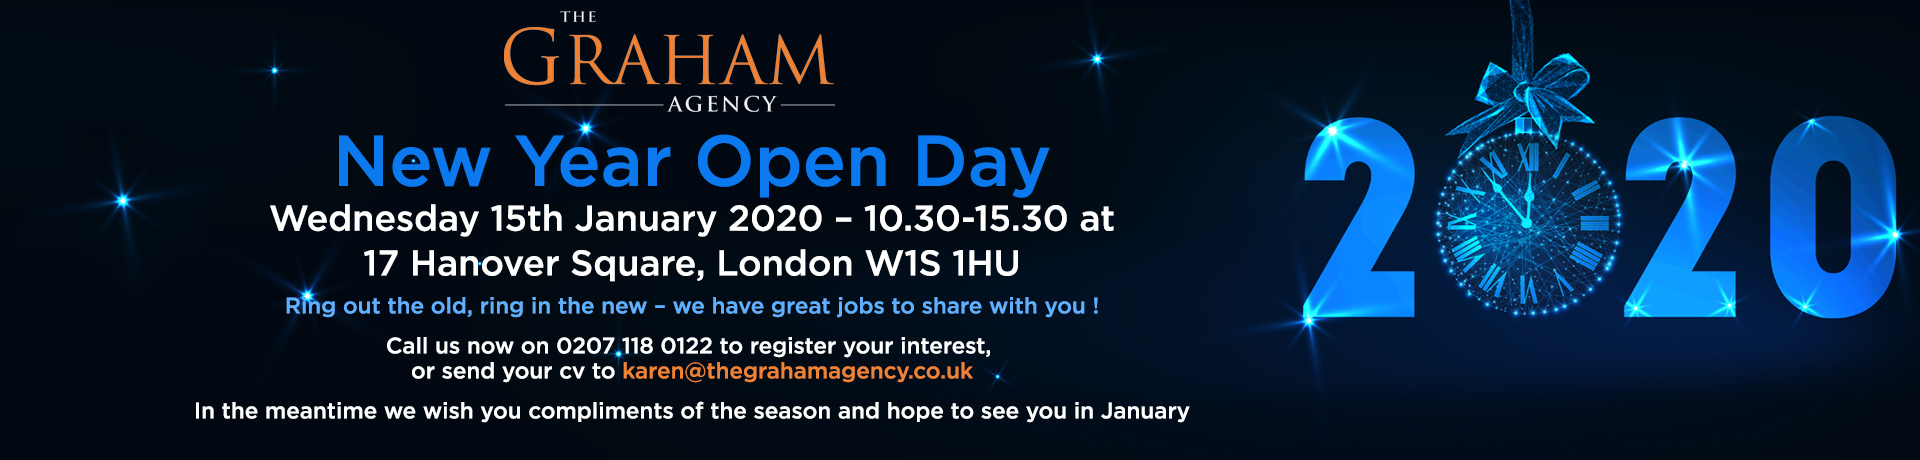 new-year-open-day